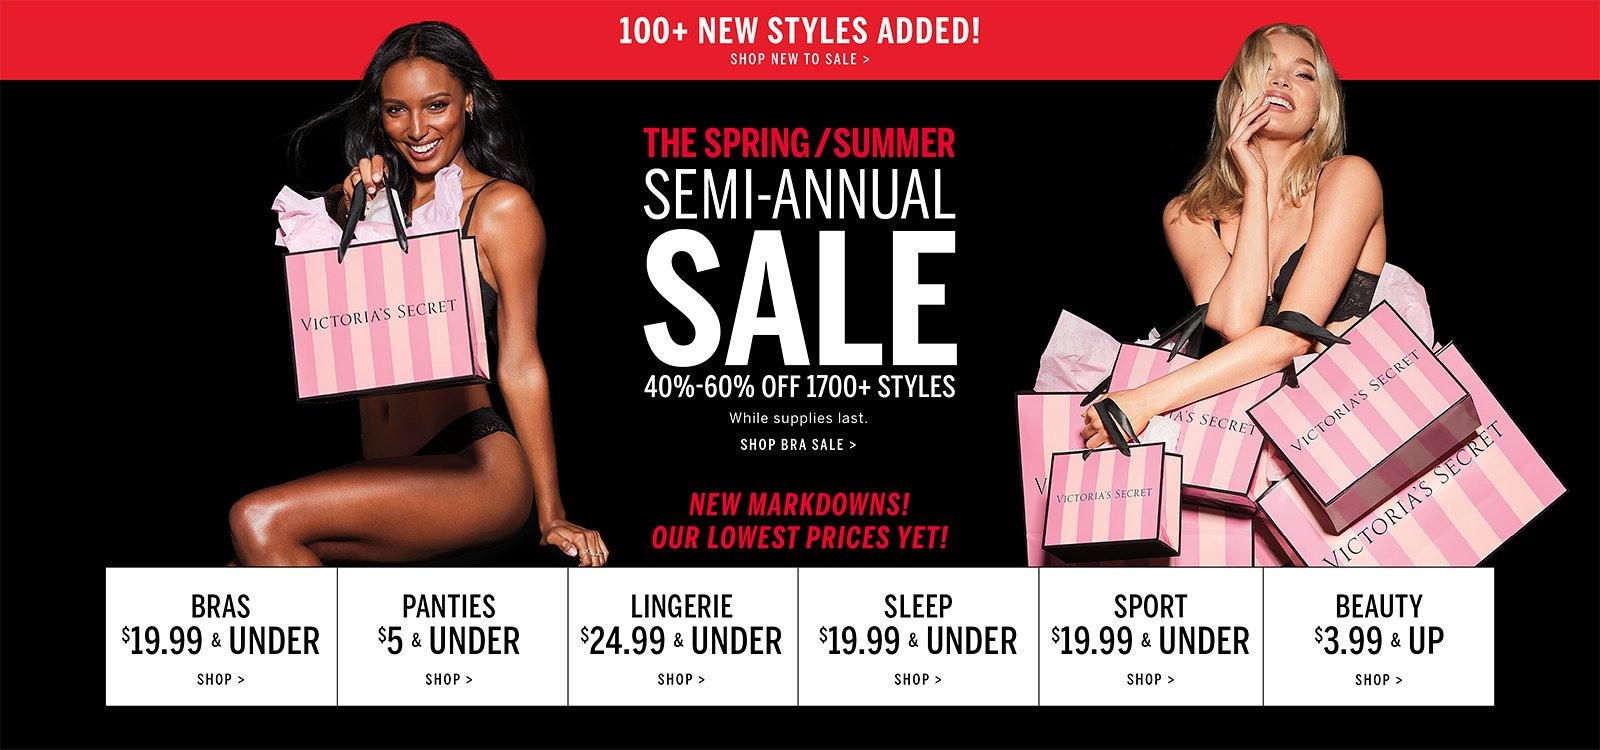 b6a0d6f220ba3 Shop New To SaleThe Spring/Summer Semi-Annual Sale. 40%-60% off 1700+  styles. While supplies last. New markdowns! Our lowest prices yet! Shop  bras sale.